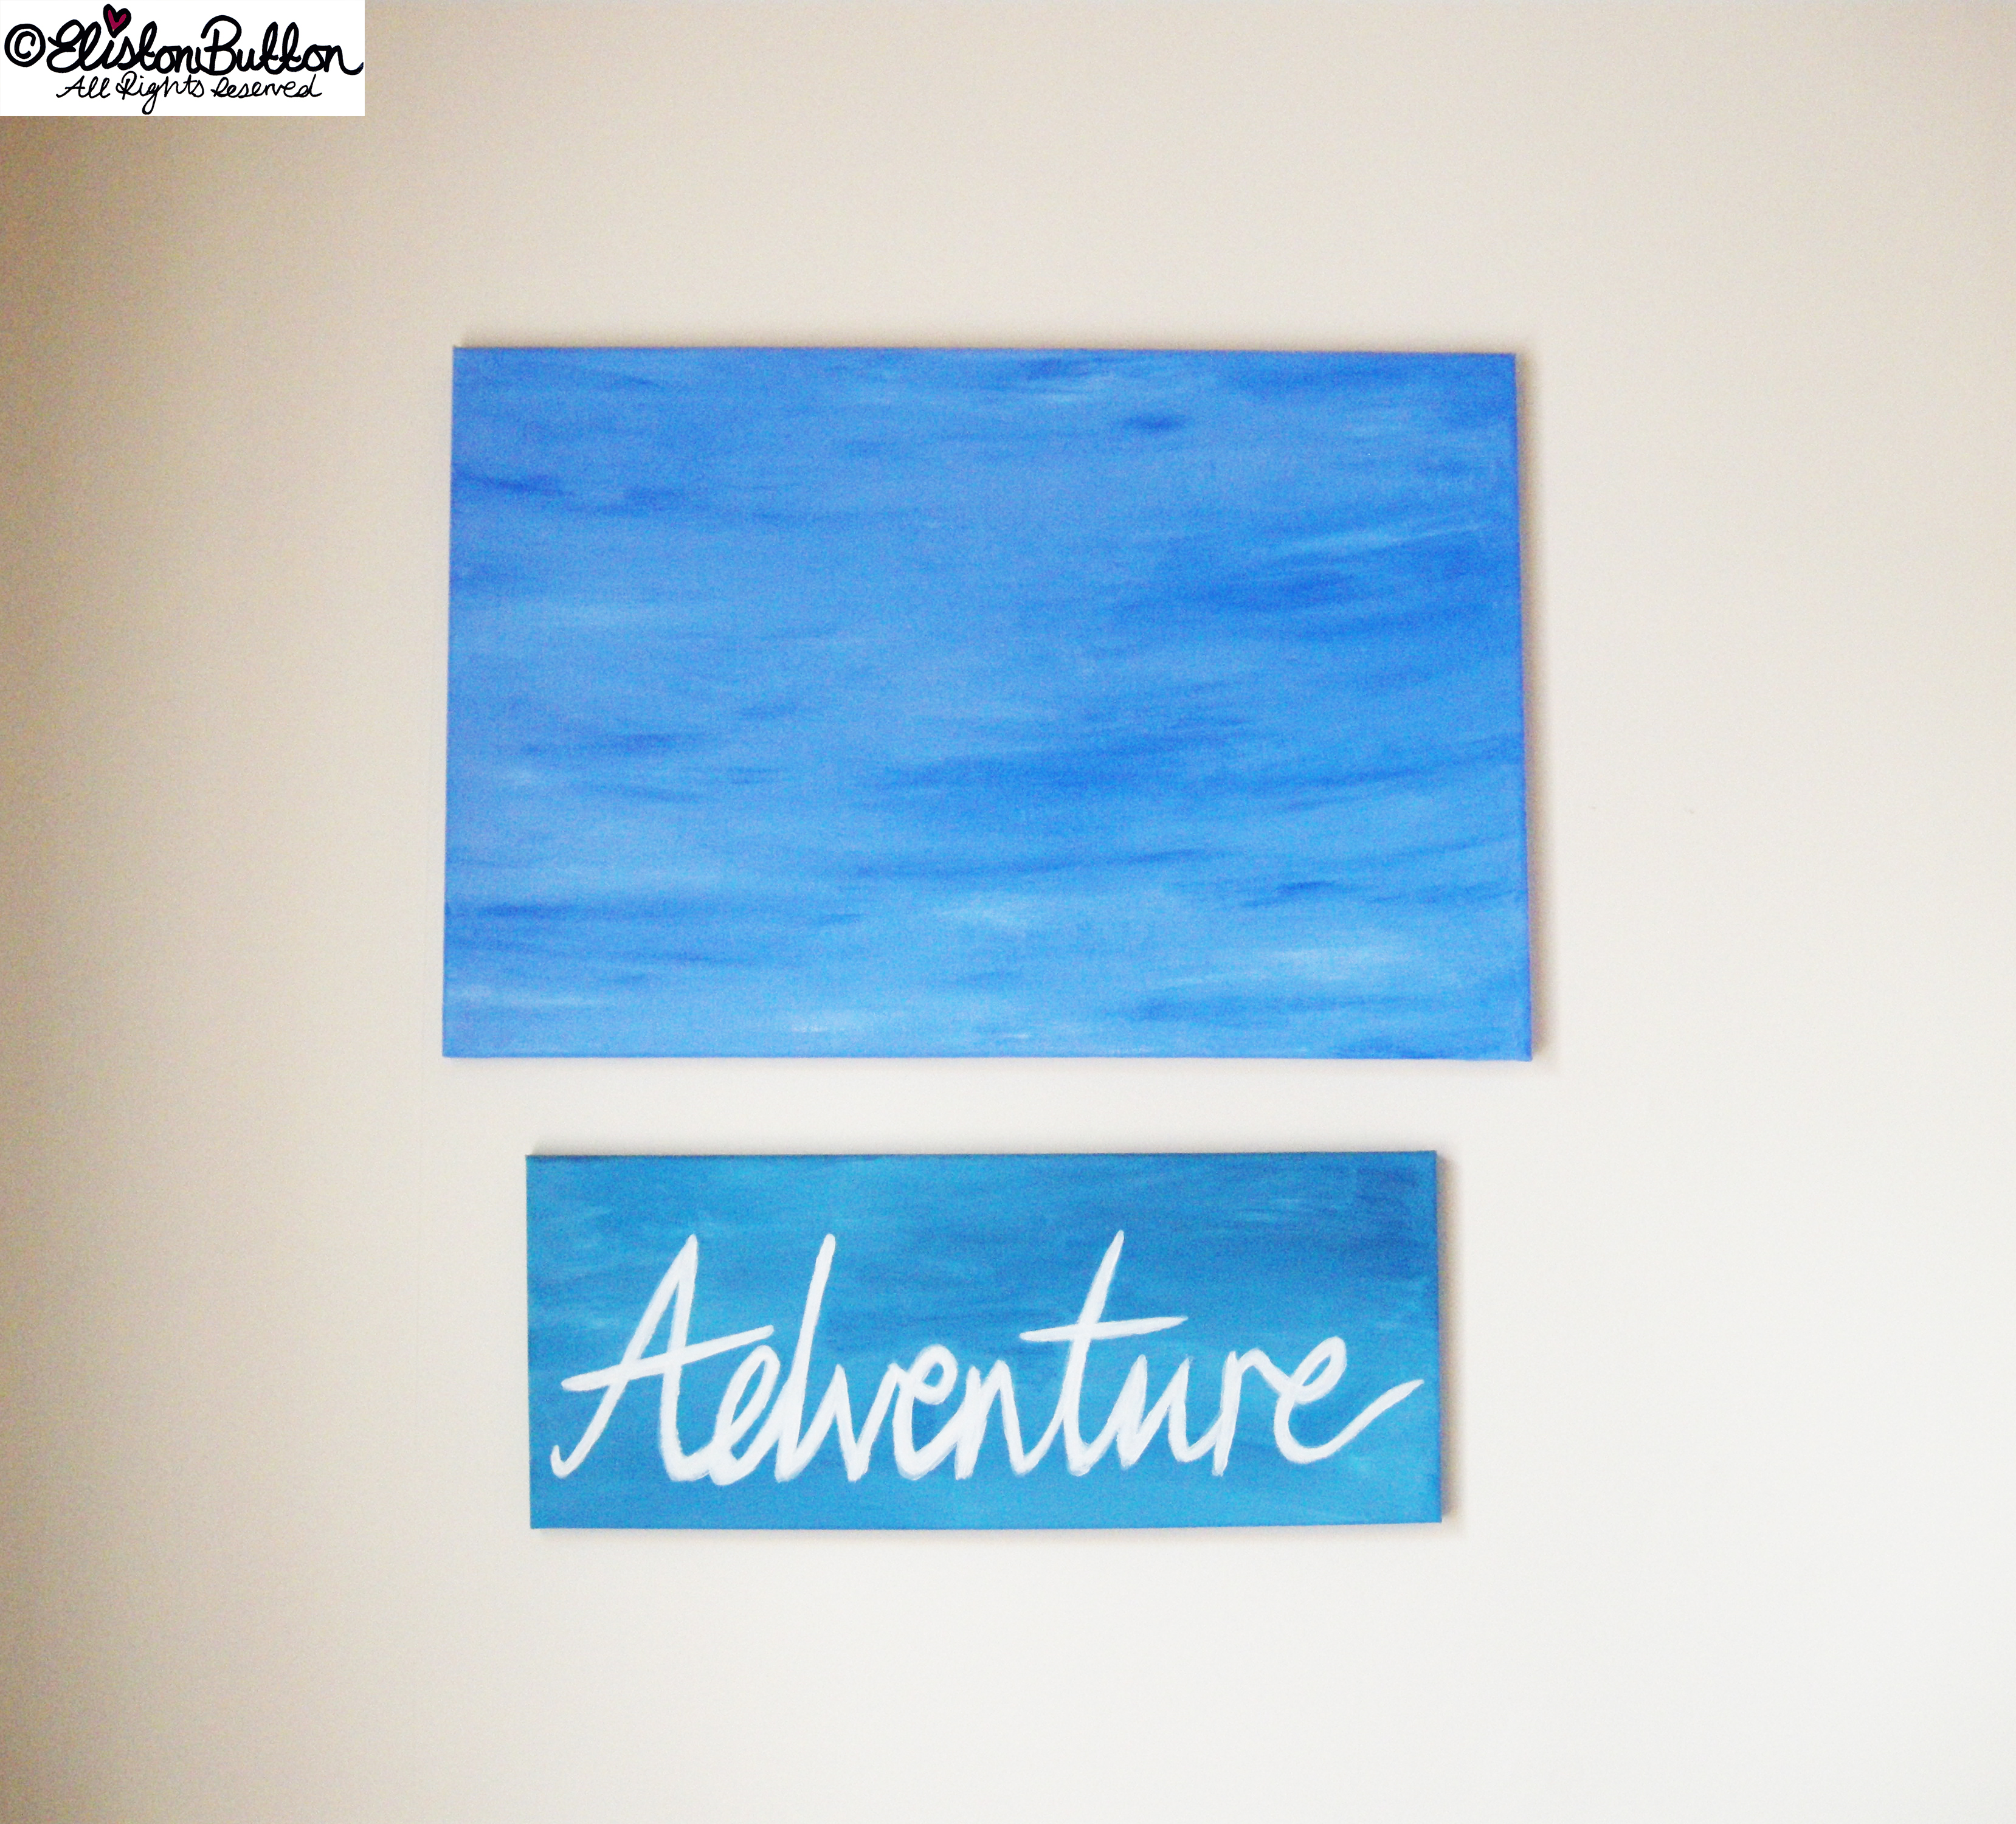 Acrylic Painted Blue Hues on Canvases - Hand Lettered Adventure - Always Adventure at www.elistonbutton.com - Eliston Button - That Crafty Kid – Art, Design, Craft & Adventure.